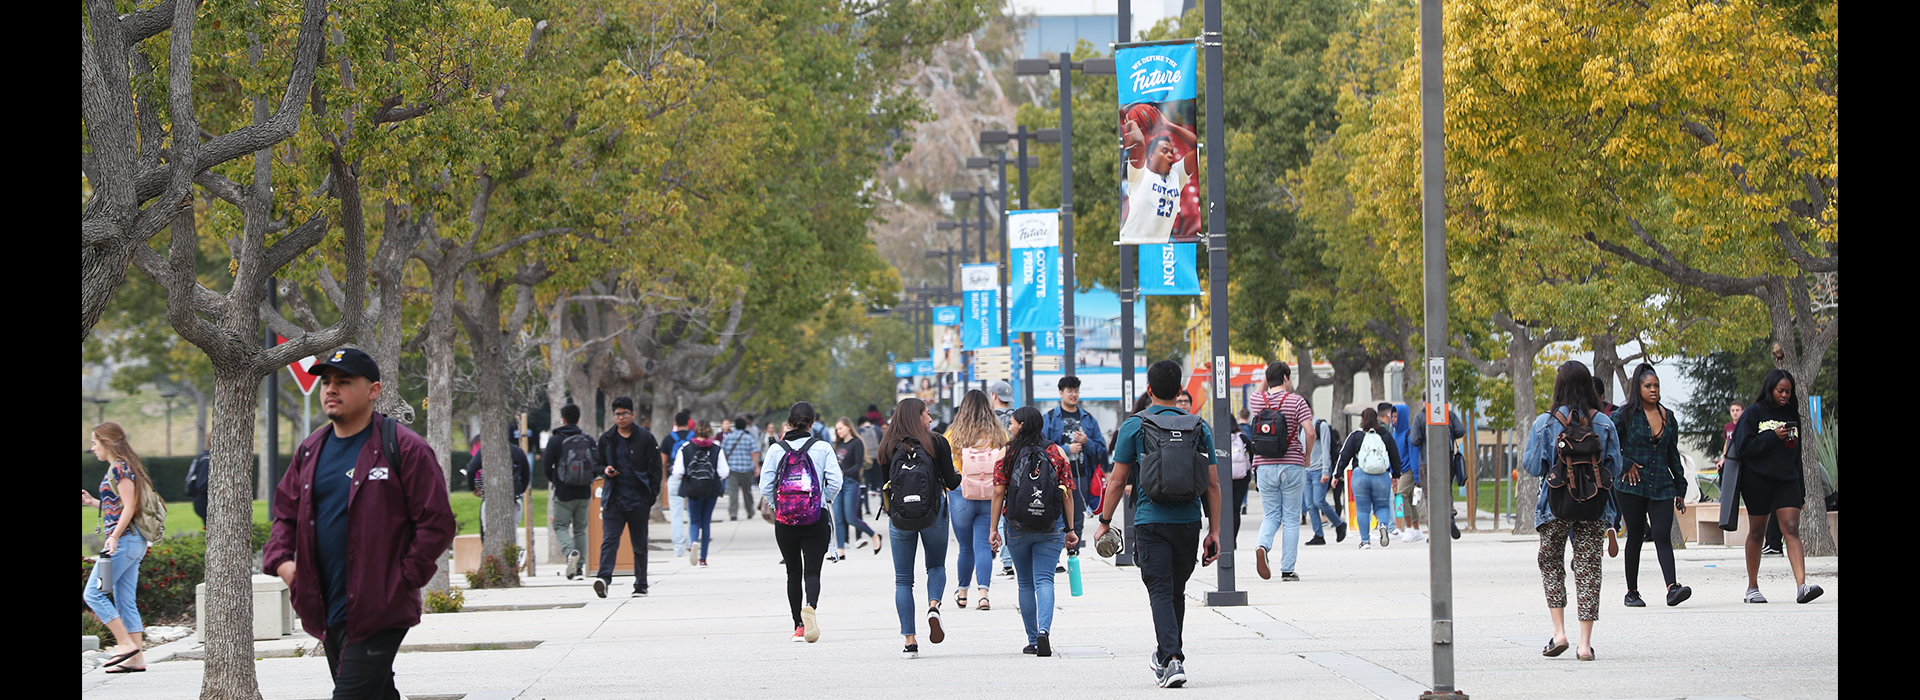 Forbes ranking lists CSUSB as among the Best Value Colleges in the nation